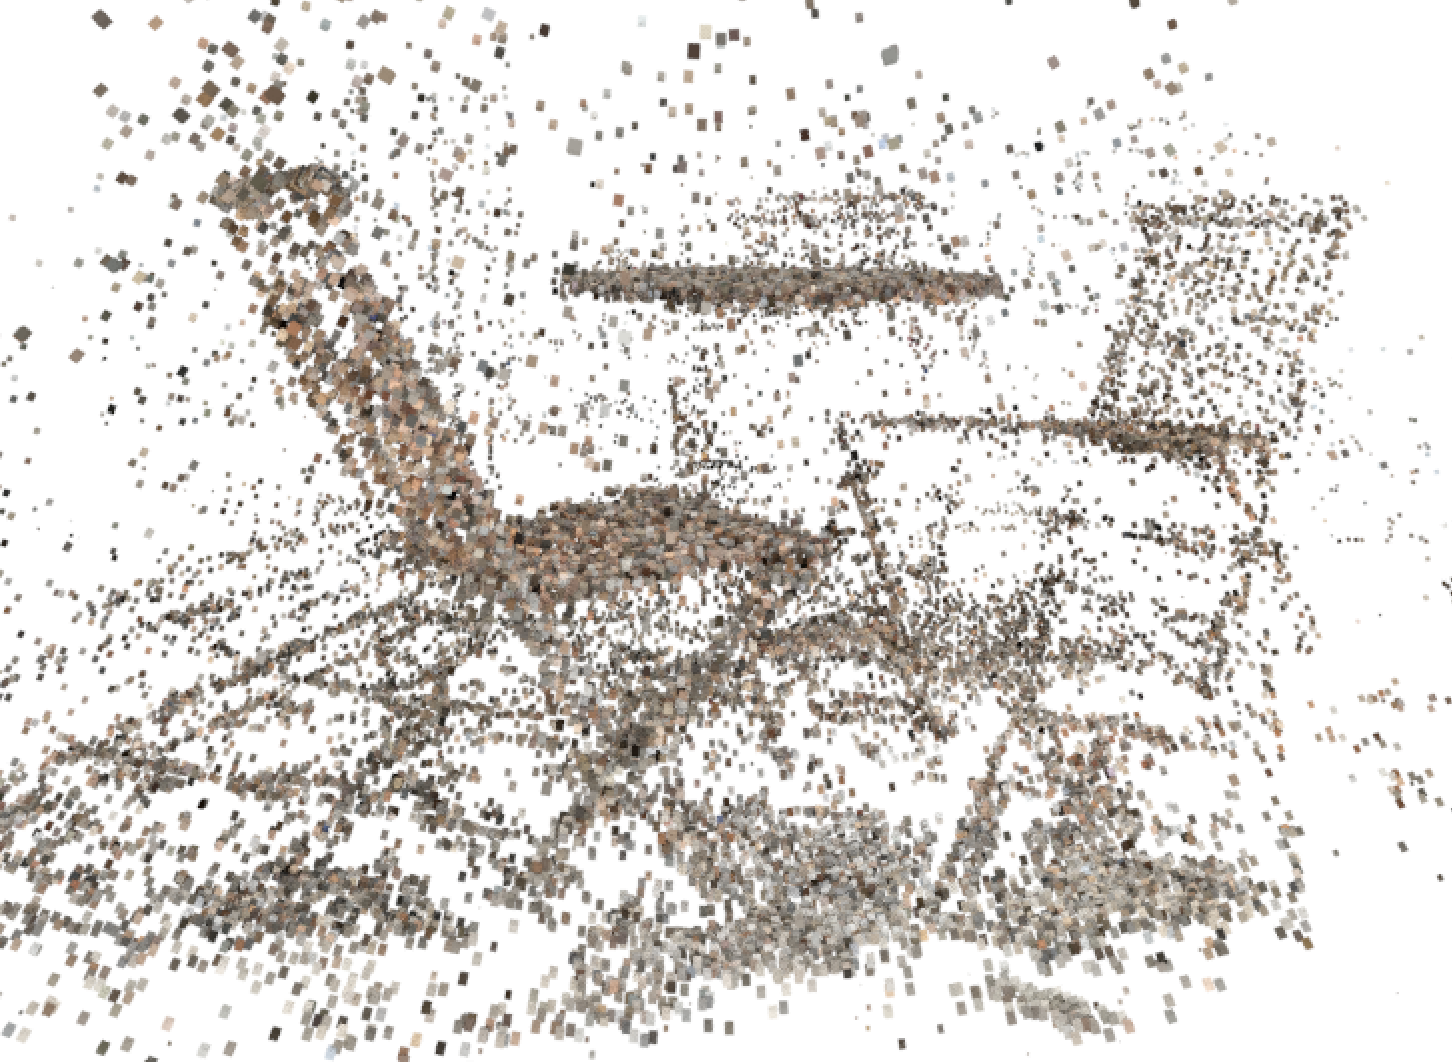 STUDY / Point Cloud Photogrammetry Using COLMAP and CloudCompare